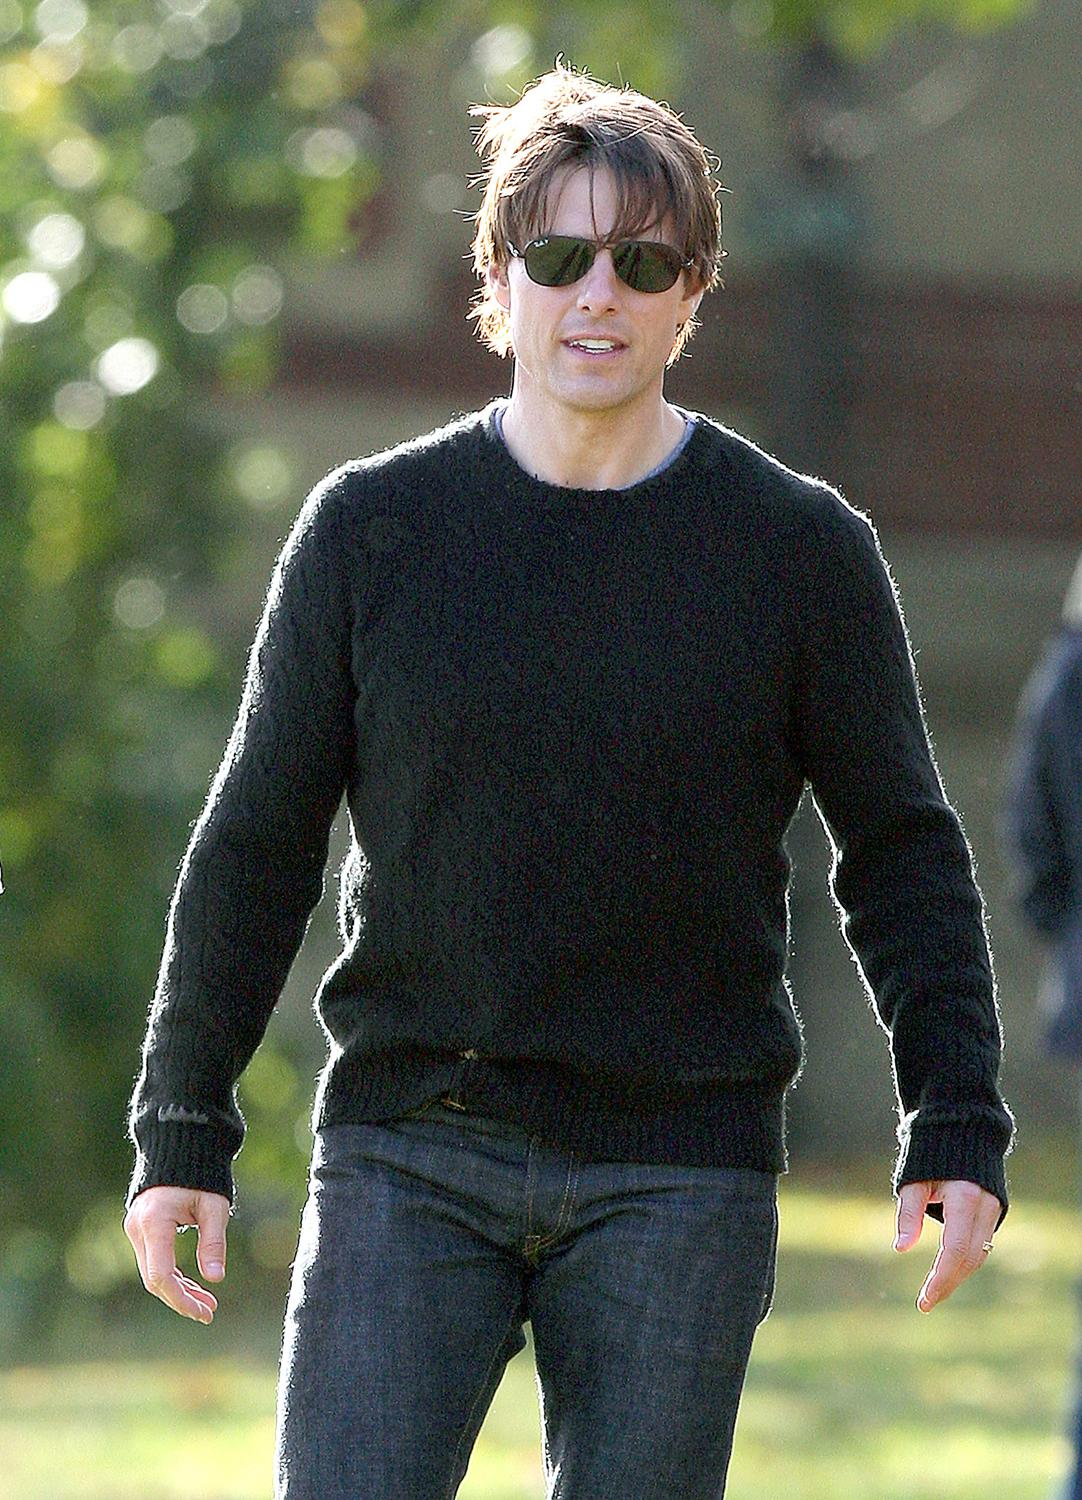 Tom cruise date of birth in Melbourne